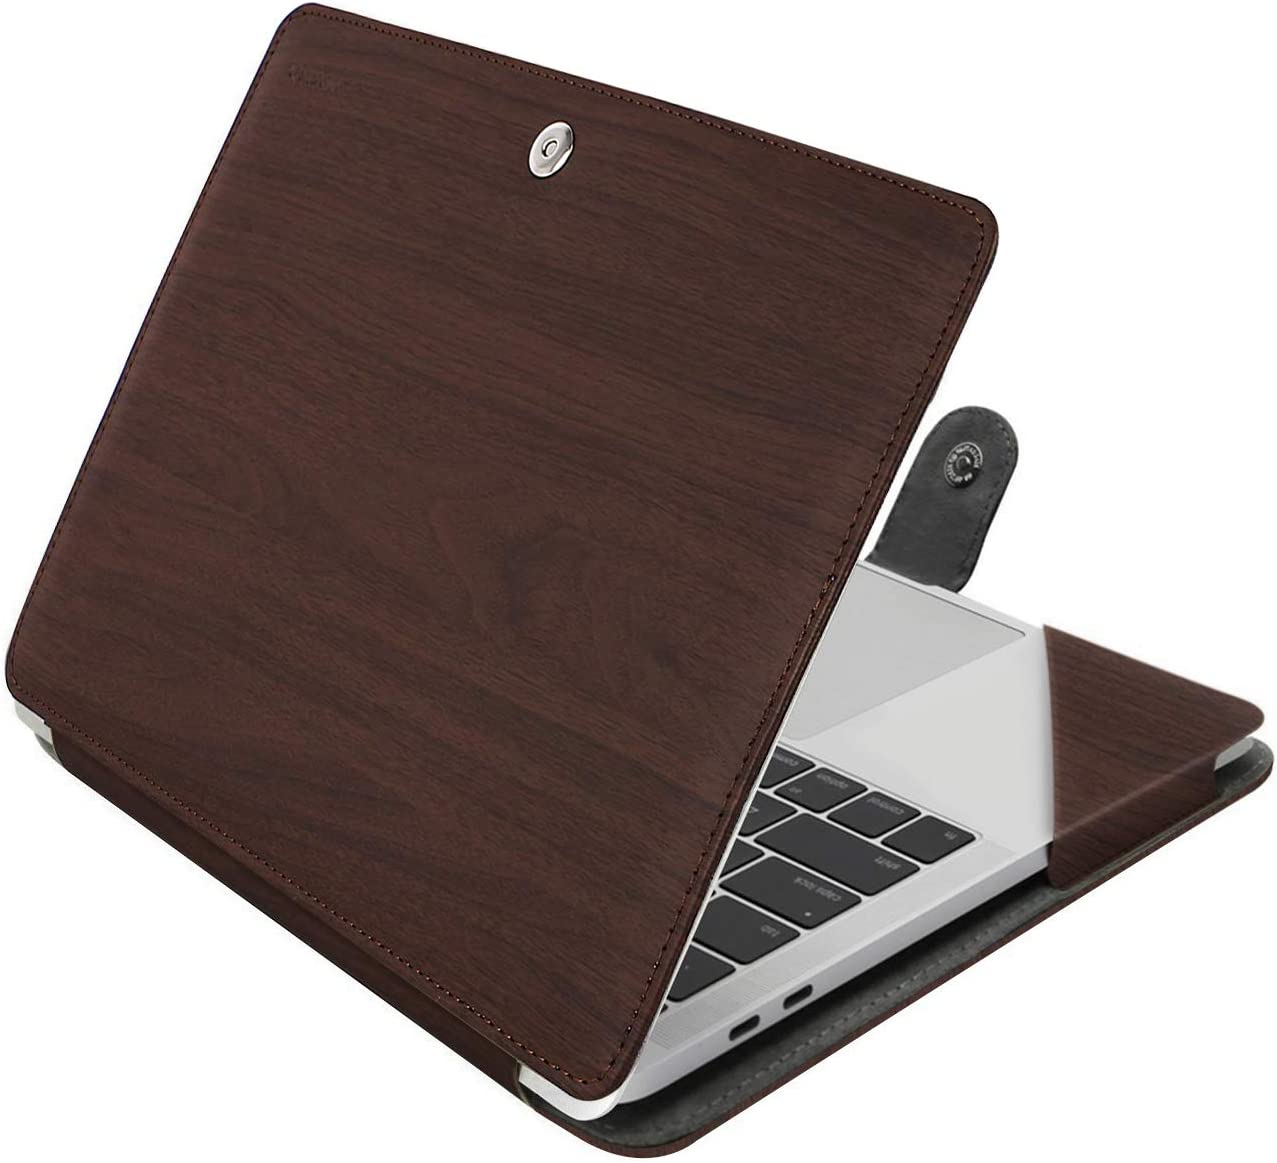 MOSISO Case Compatible with 2020-2018 MacBook Air 13 A2337 M1 A2179 A1932/2020-2016 MacBook Pro 13 A2338 M1 A2251 A2289 A2159 A1989 A1706 A1708,PU Leather Folio Protective Cover, Wood Grain Deep Brown